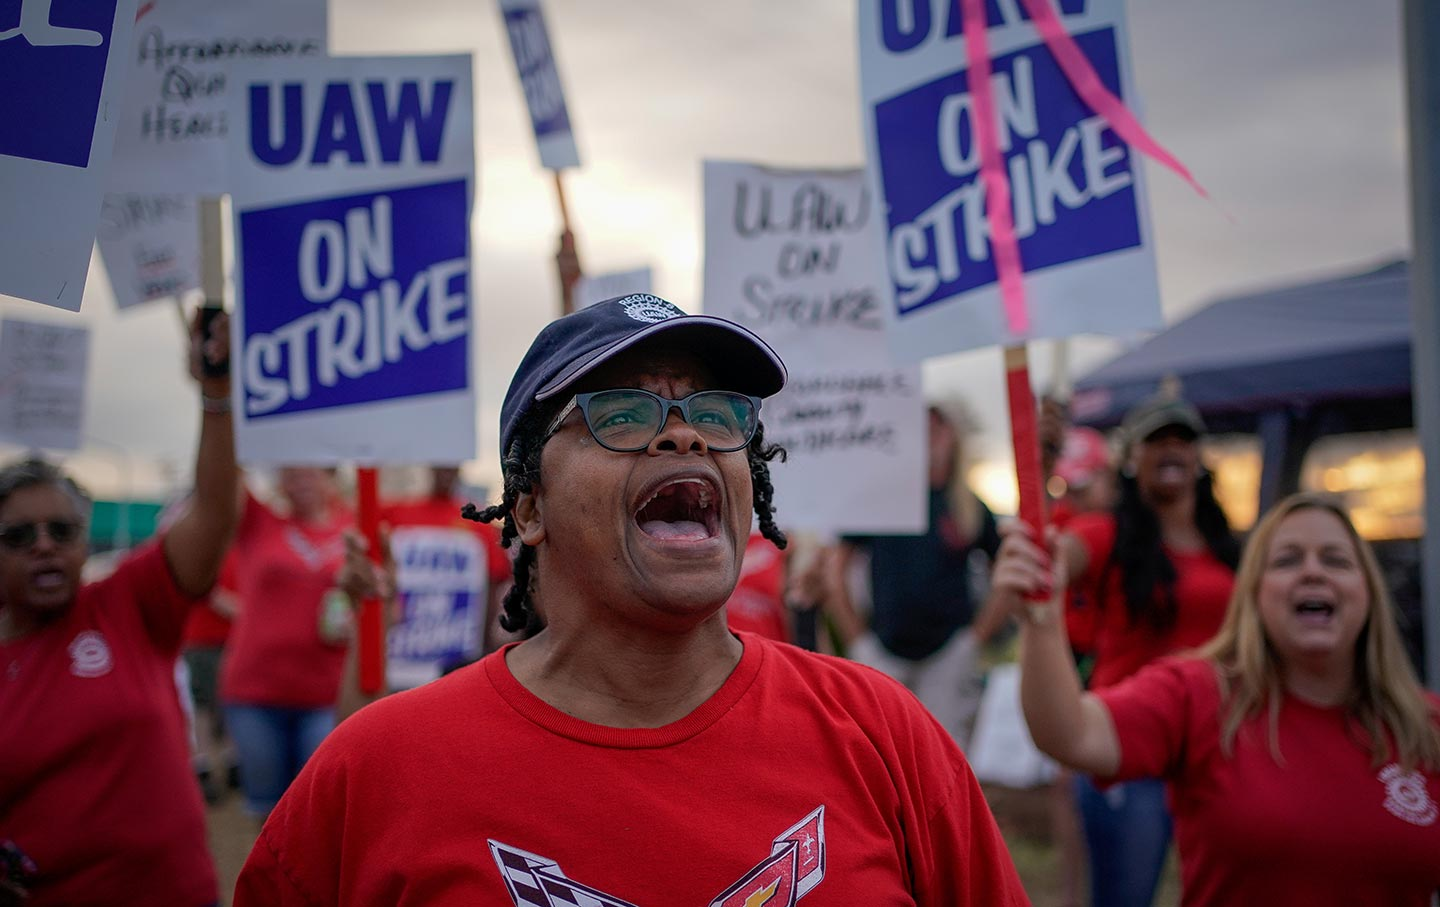 Trump Is Revving Up the Attack on Workers' Rights